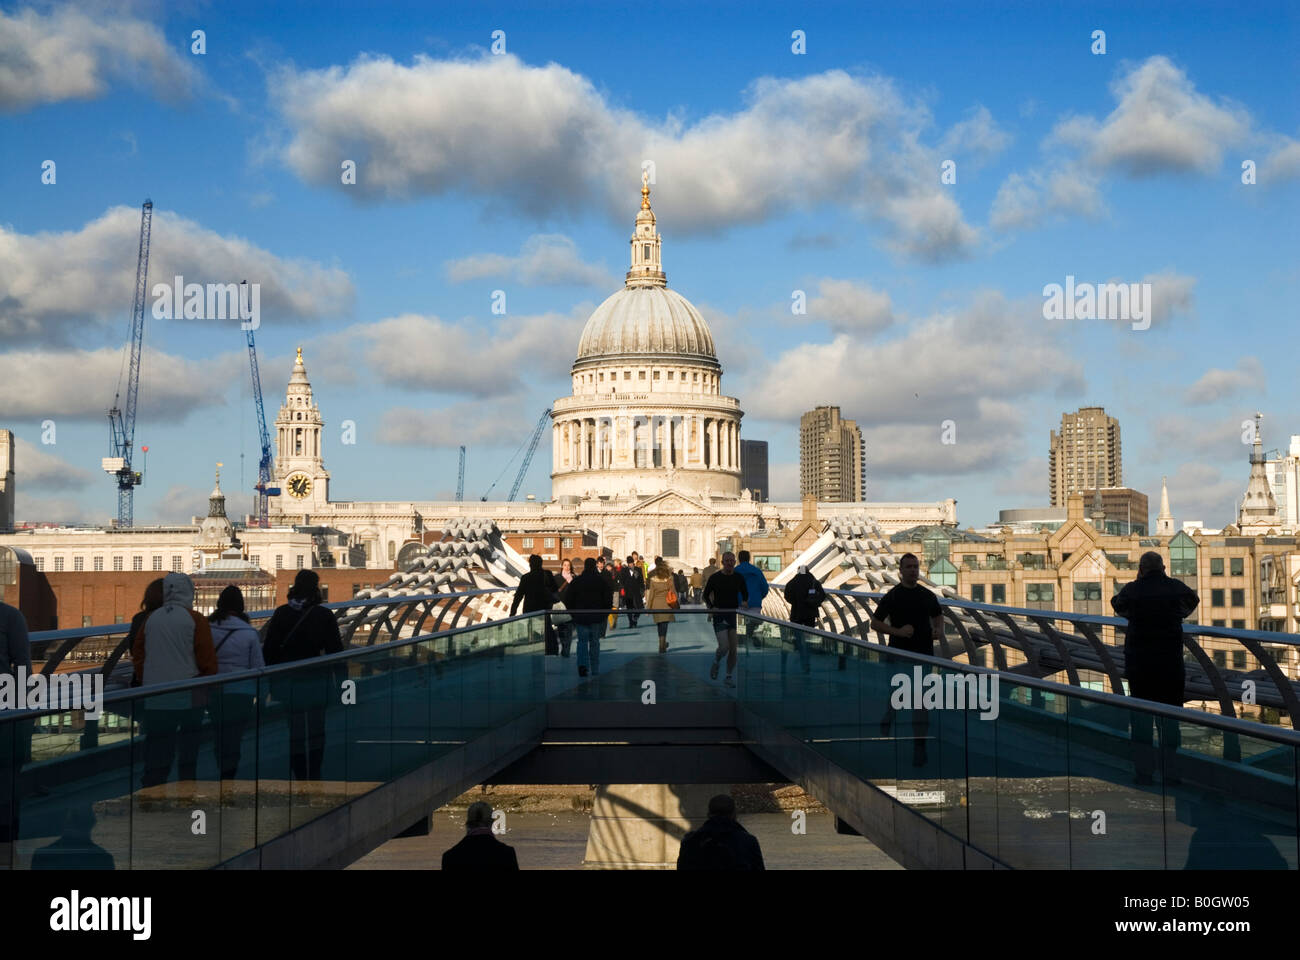 St Paul's Cathedral from the Millennium Bridge London England UK Stock Photo